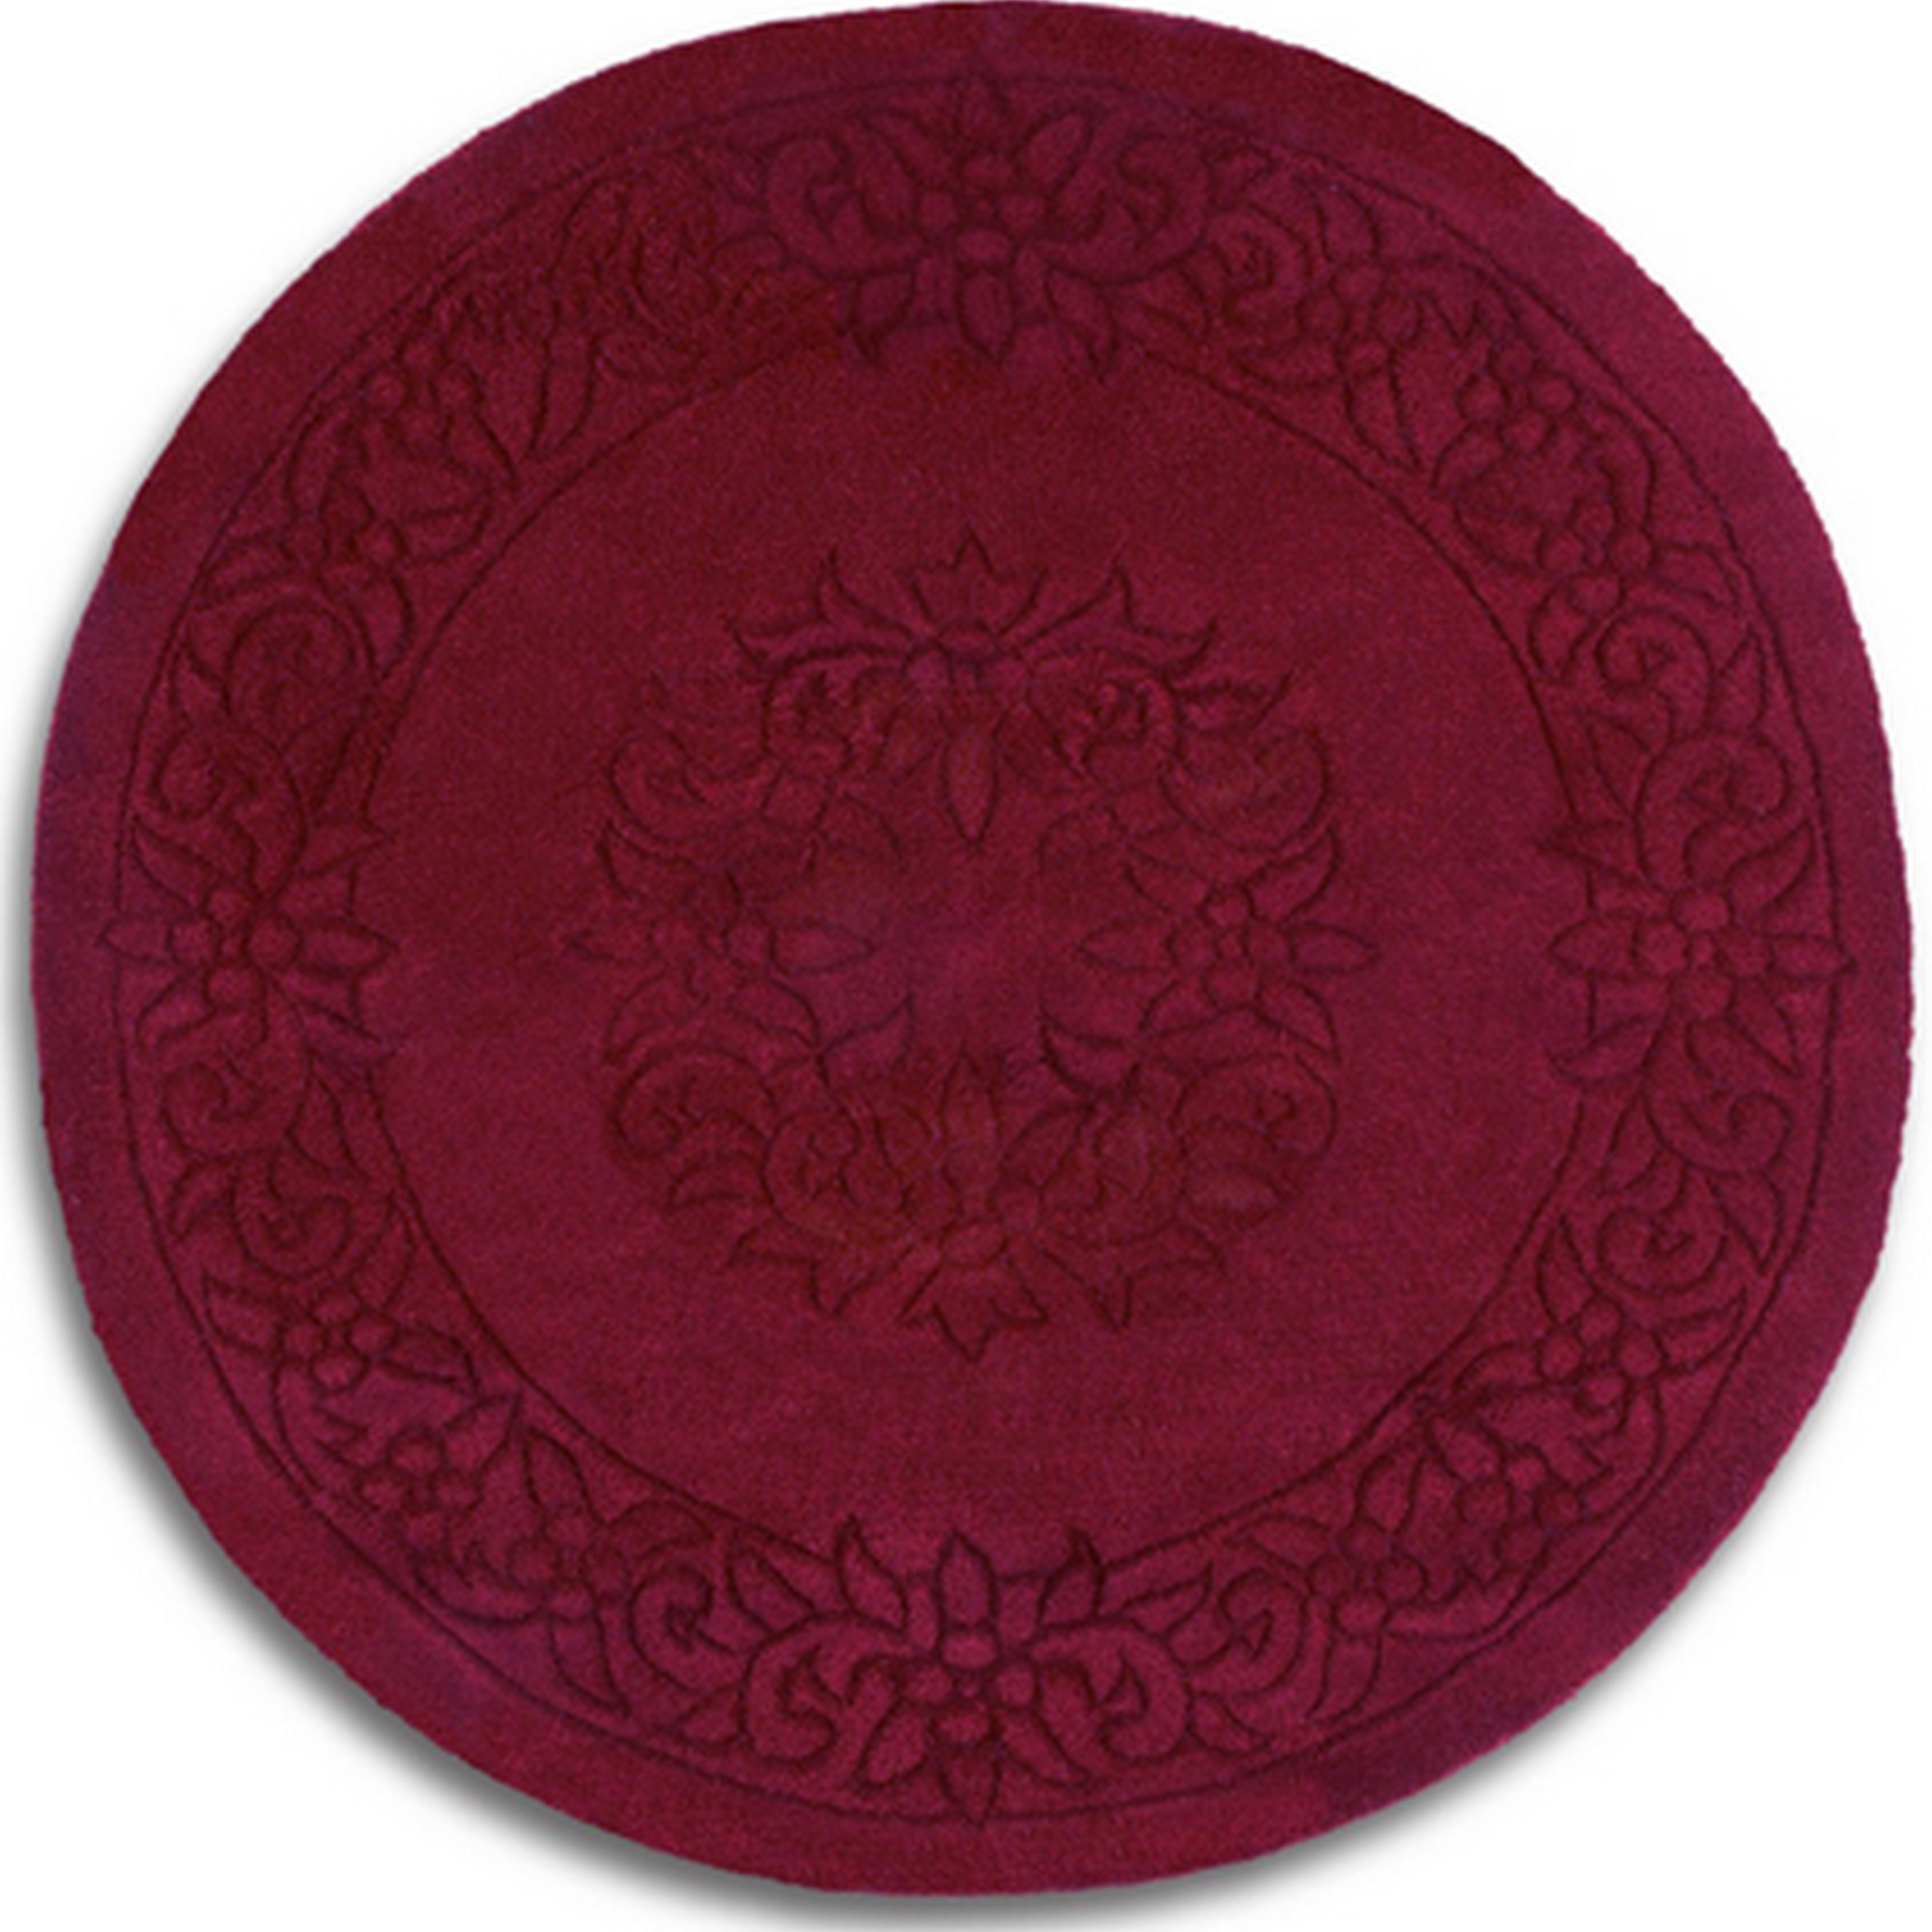 Royale Circular Rugs - Traditional Indian Wool in Wine